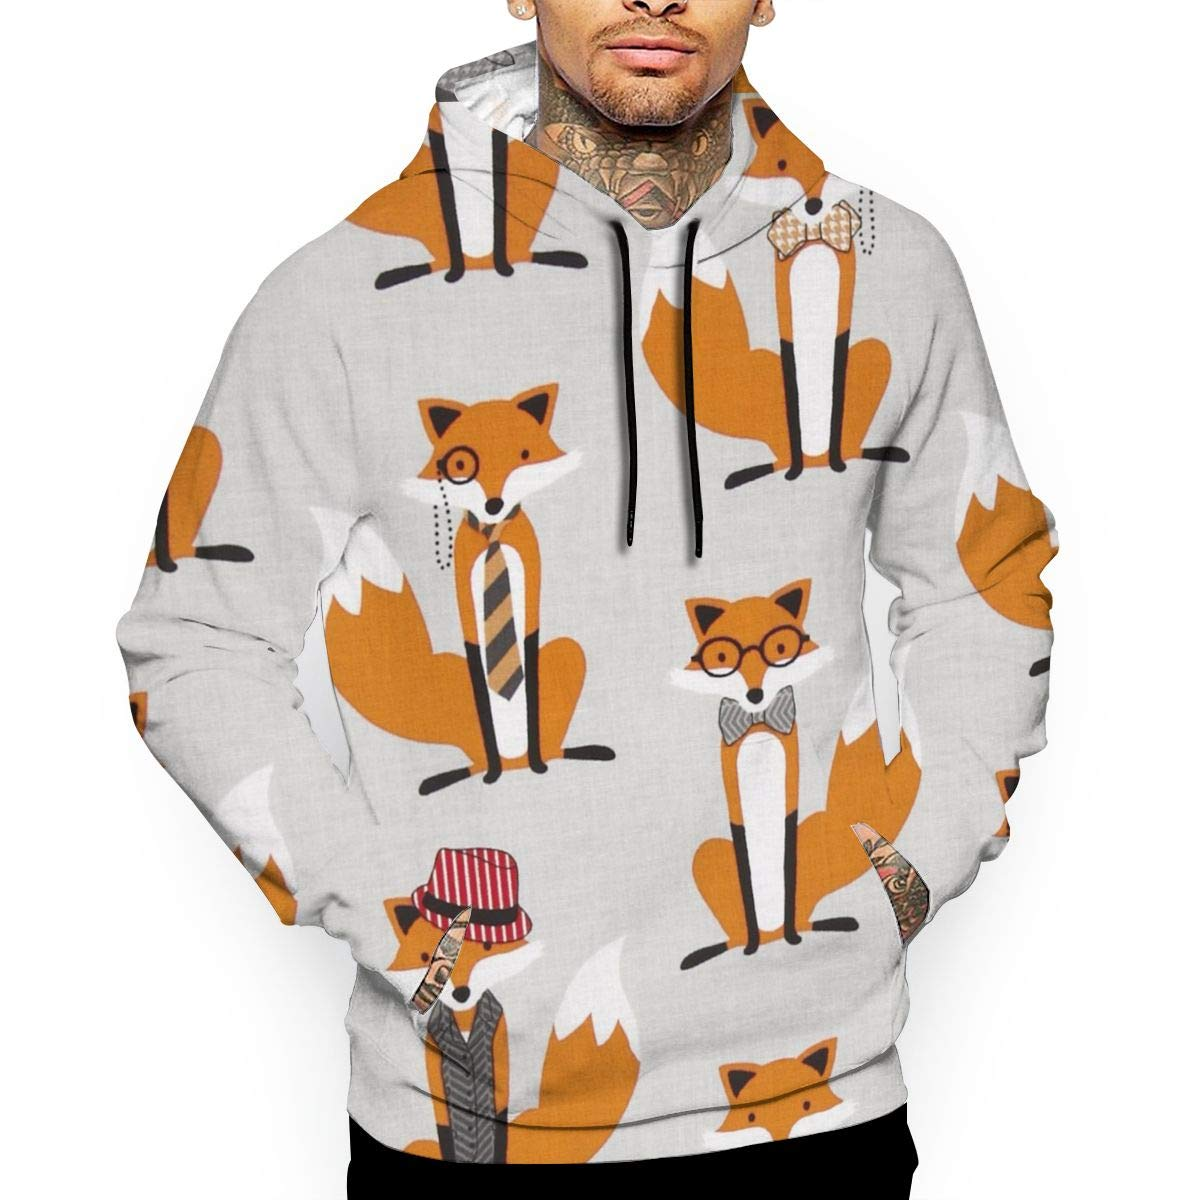 Elason77 Houndstooth Foxes Mens Adult Pullover Hooded Sweatshirt,Personality Hoodies